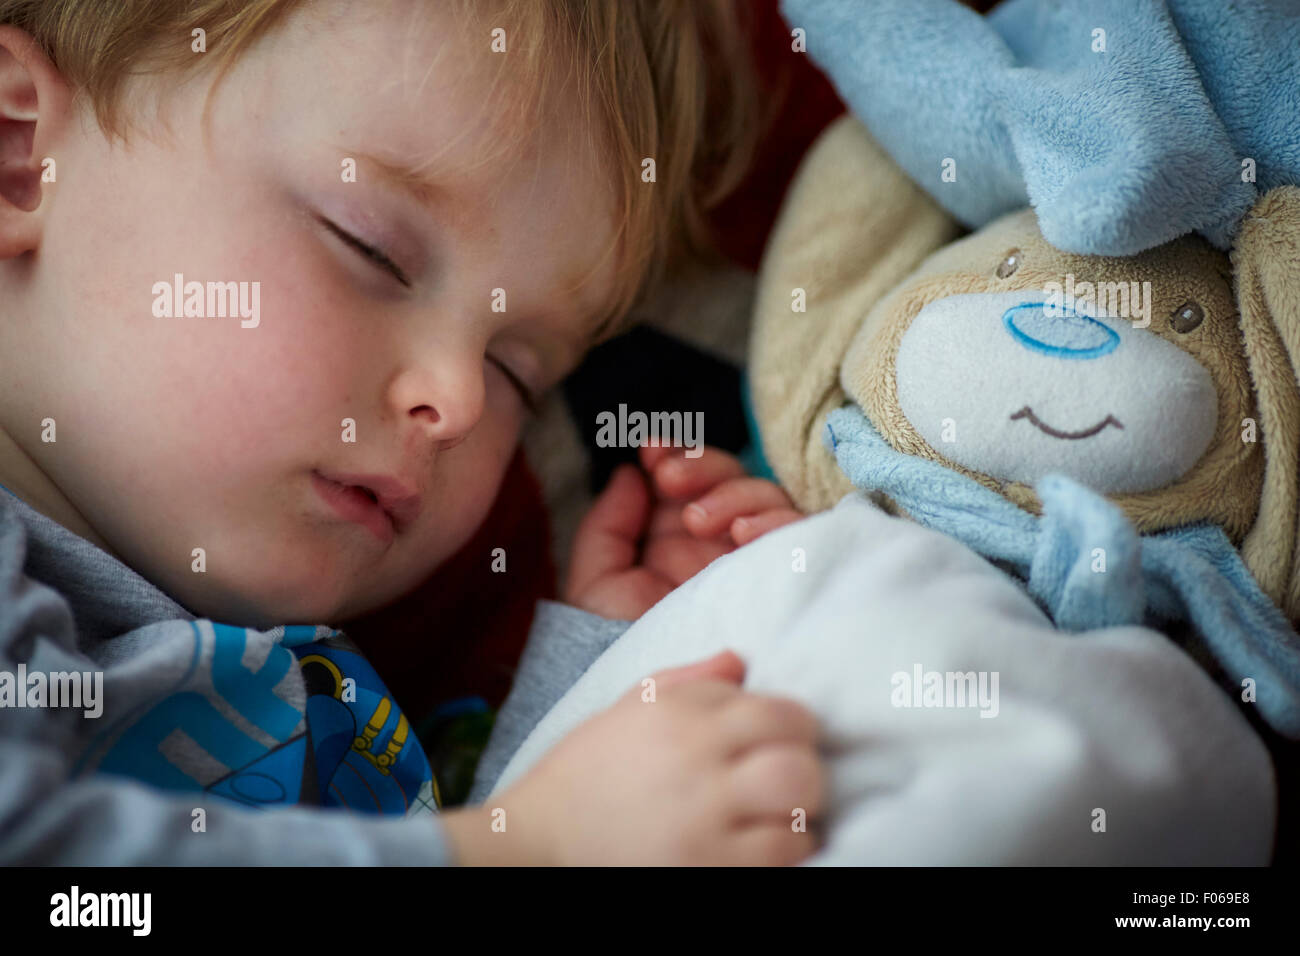 Small child boy asleep with his teddy bear as confuter   Baby babies youths youngster  children children's toddlers - Stock Image